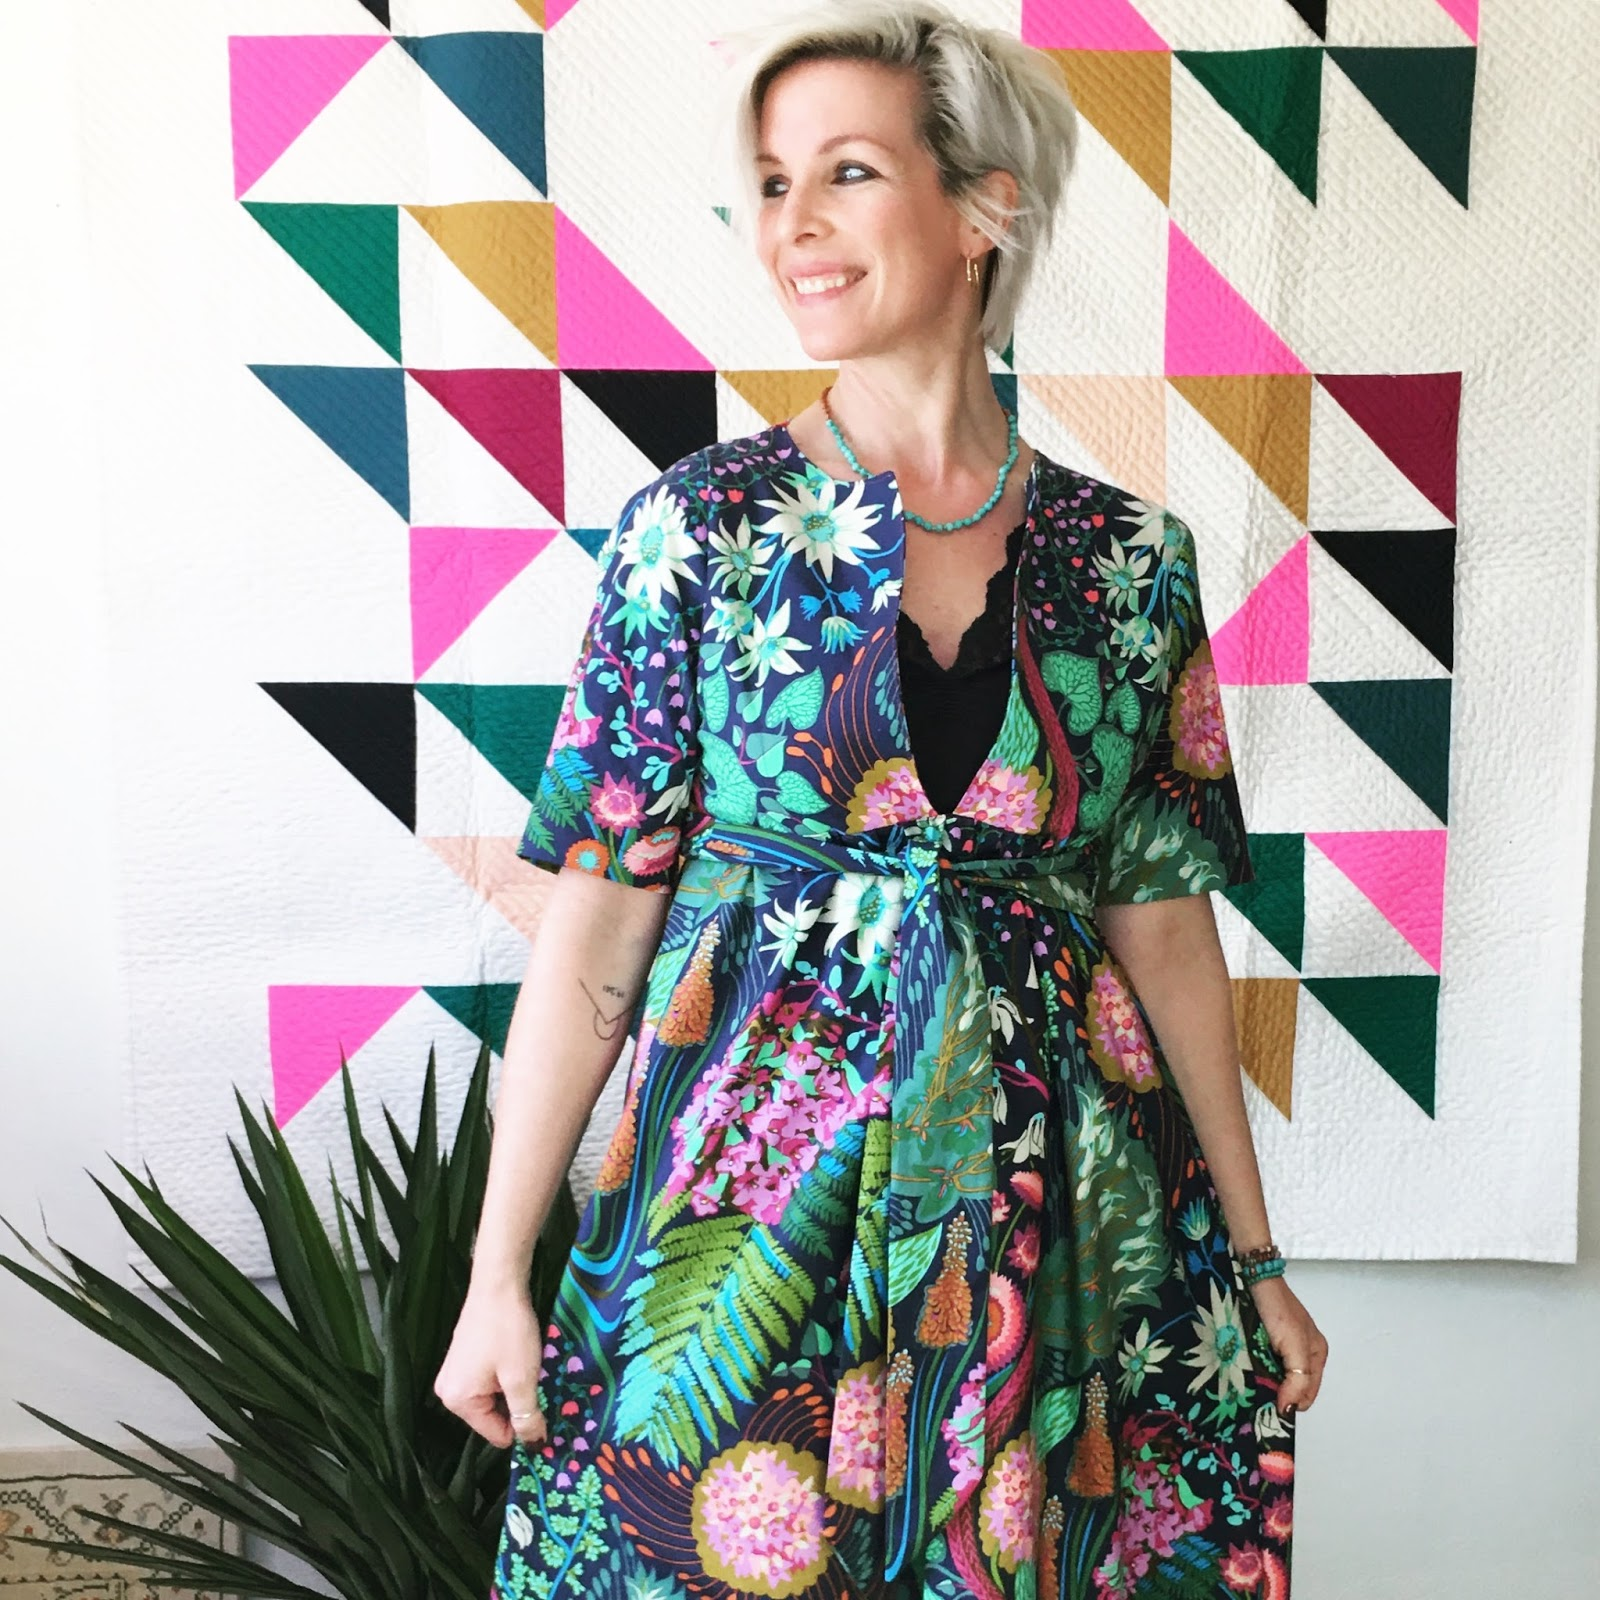 Hungryhippie sews sewing the schoolhouse tunic and dress i often wear silk slips under my dresses i feel fancy that way here is a tutorial on how to make one yourself or buy them ready to go here jeuxipadfo Images